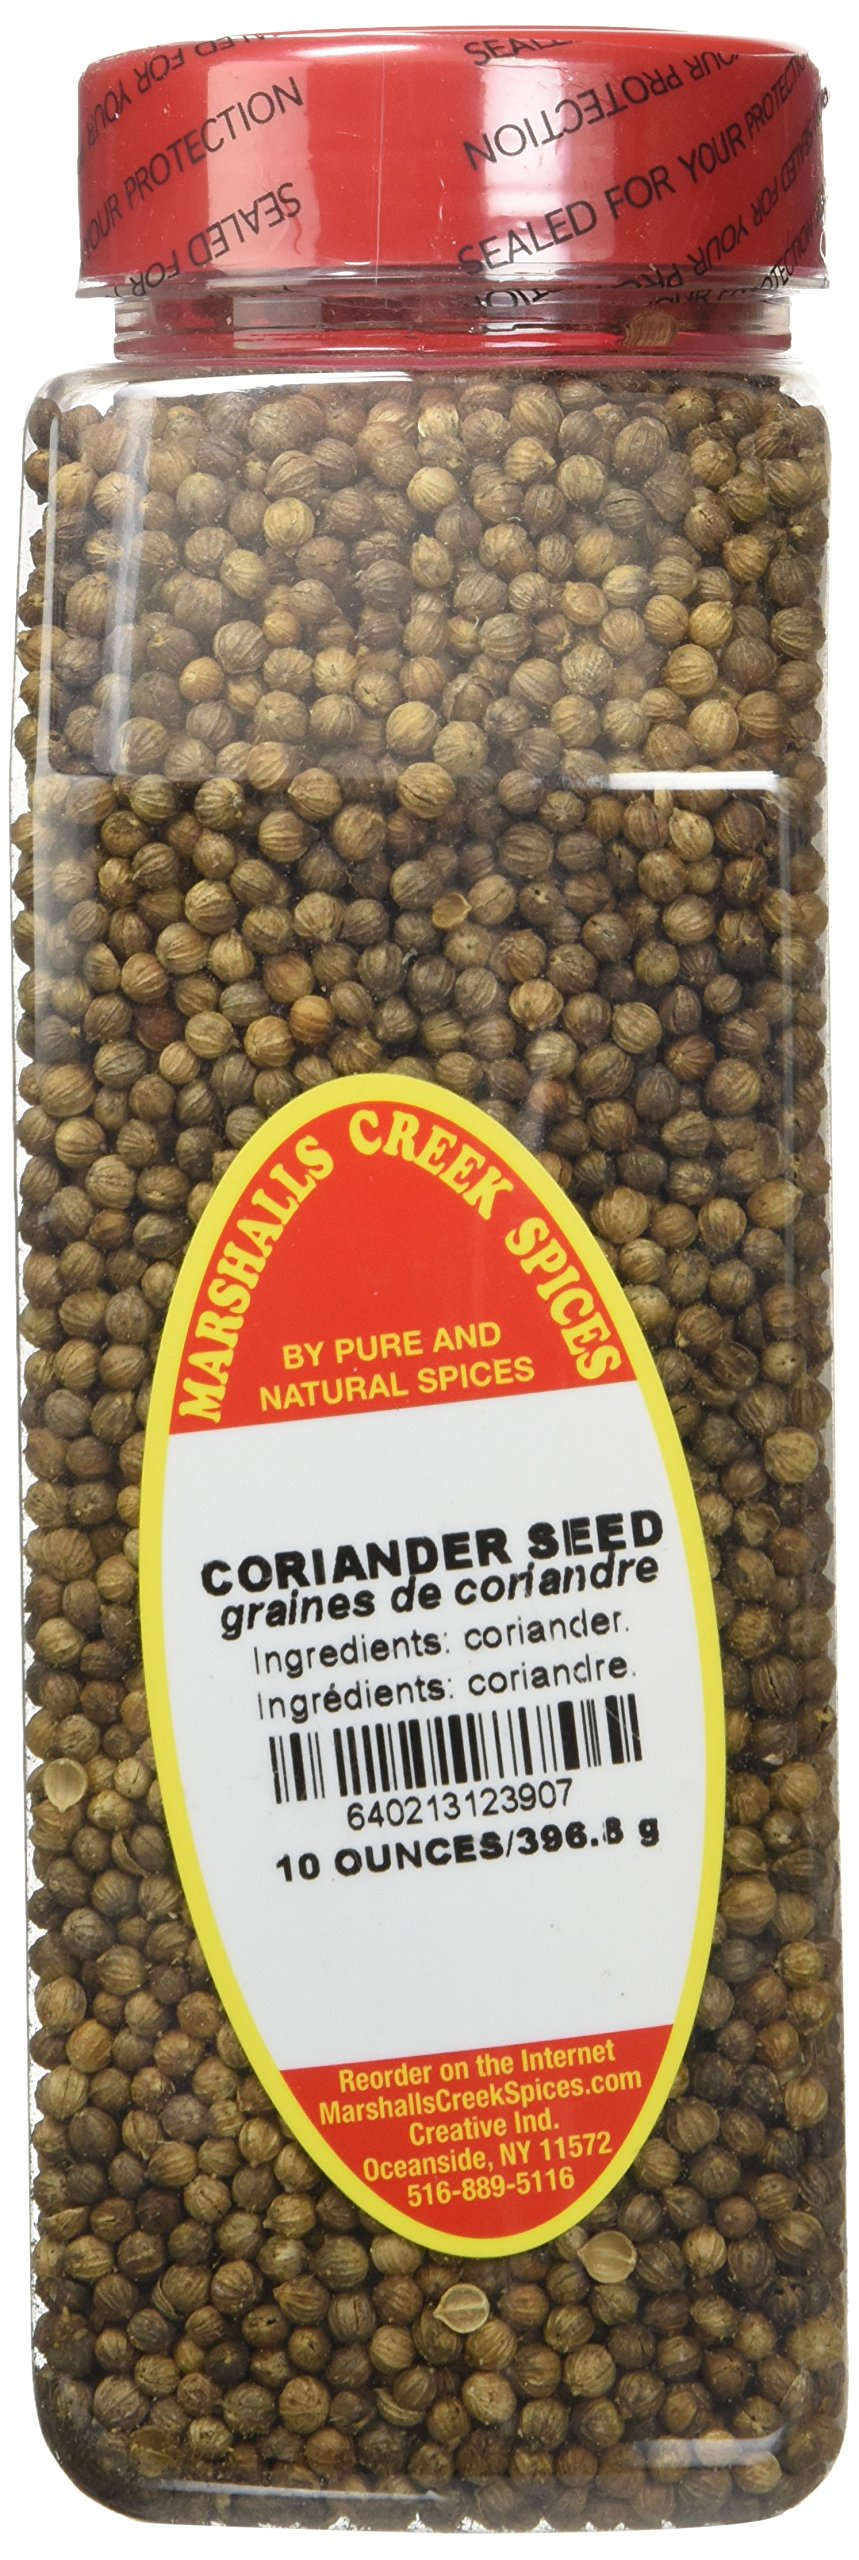 Marshalls Creek Spices Coriander Seed Seasoning, Whole, XL Size, 10 Ounce